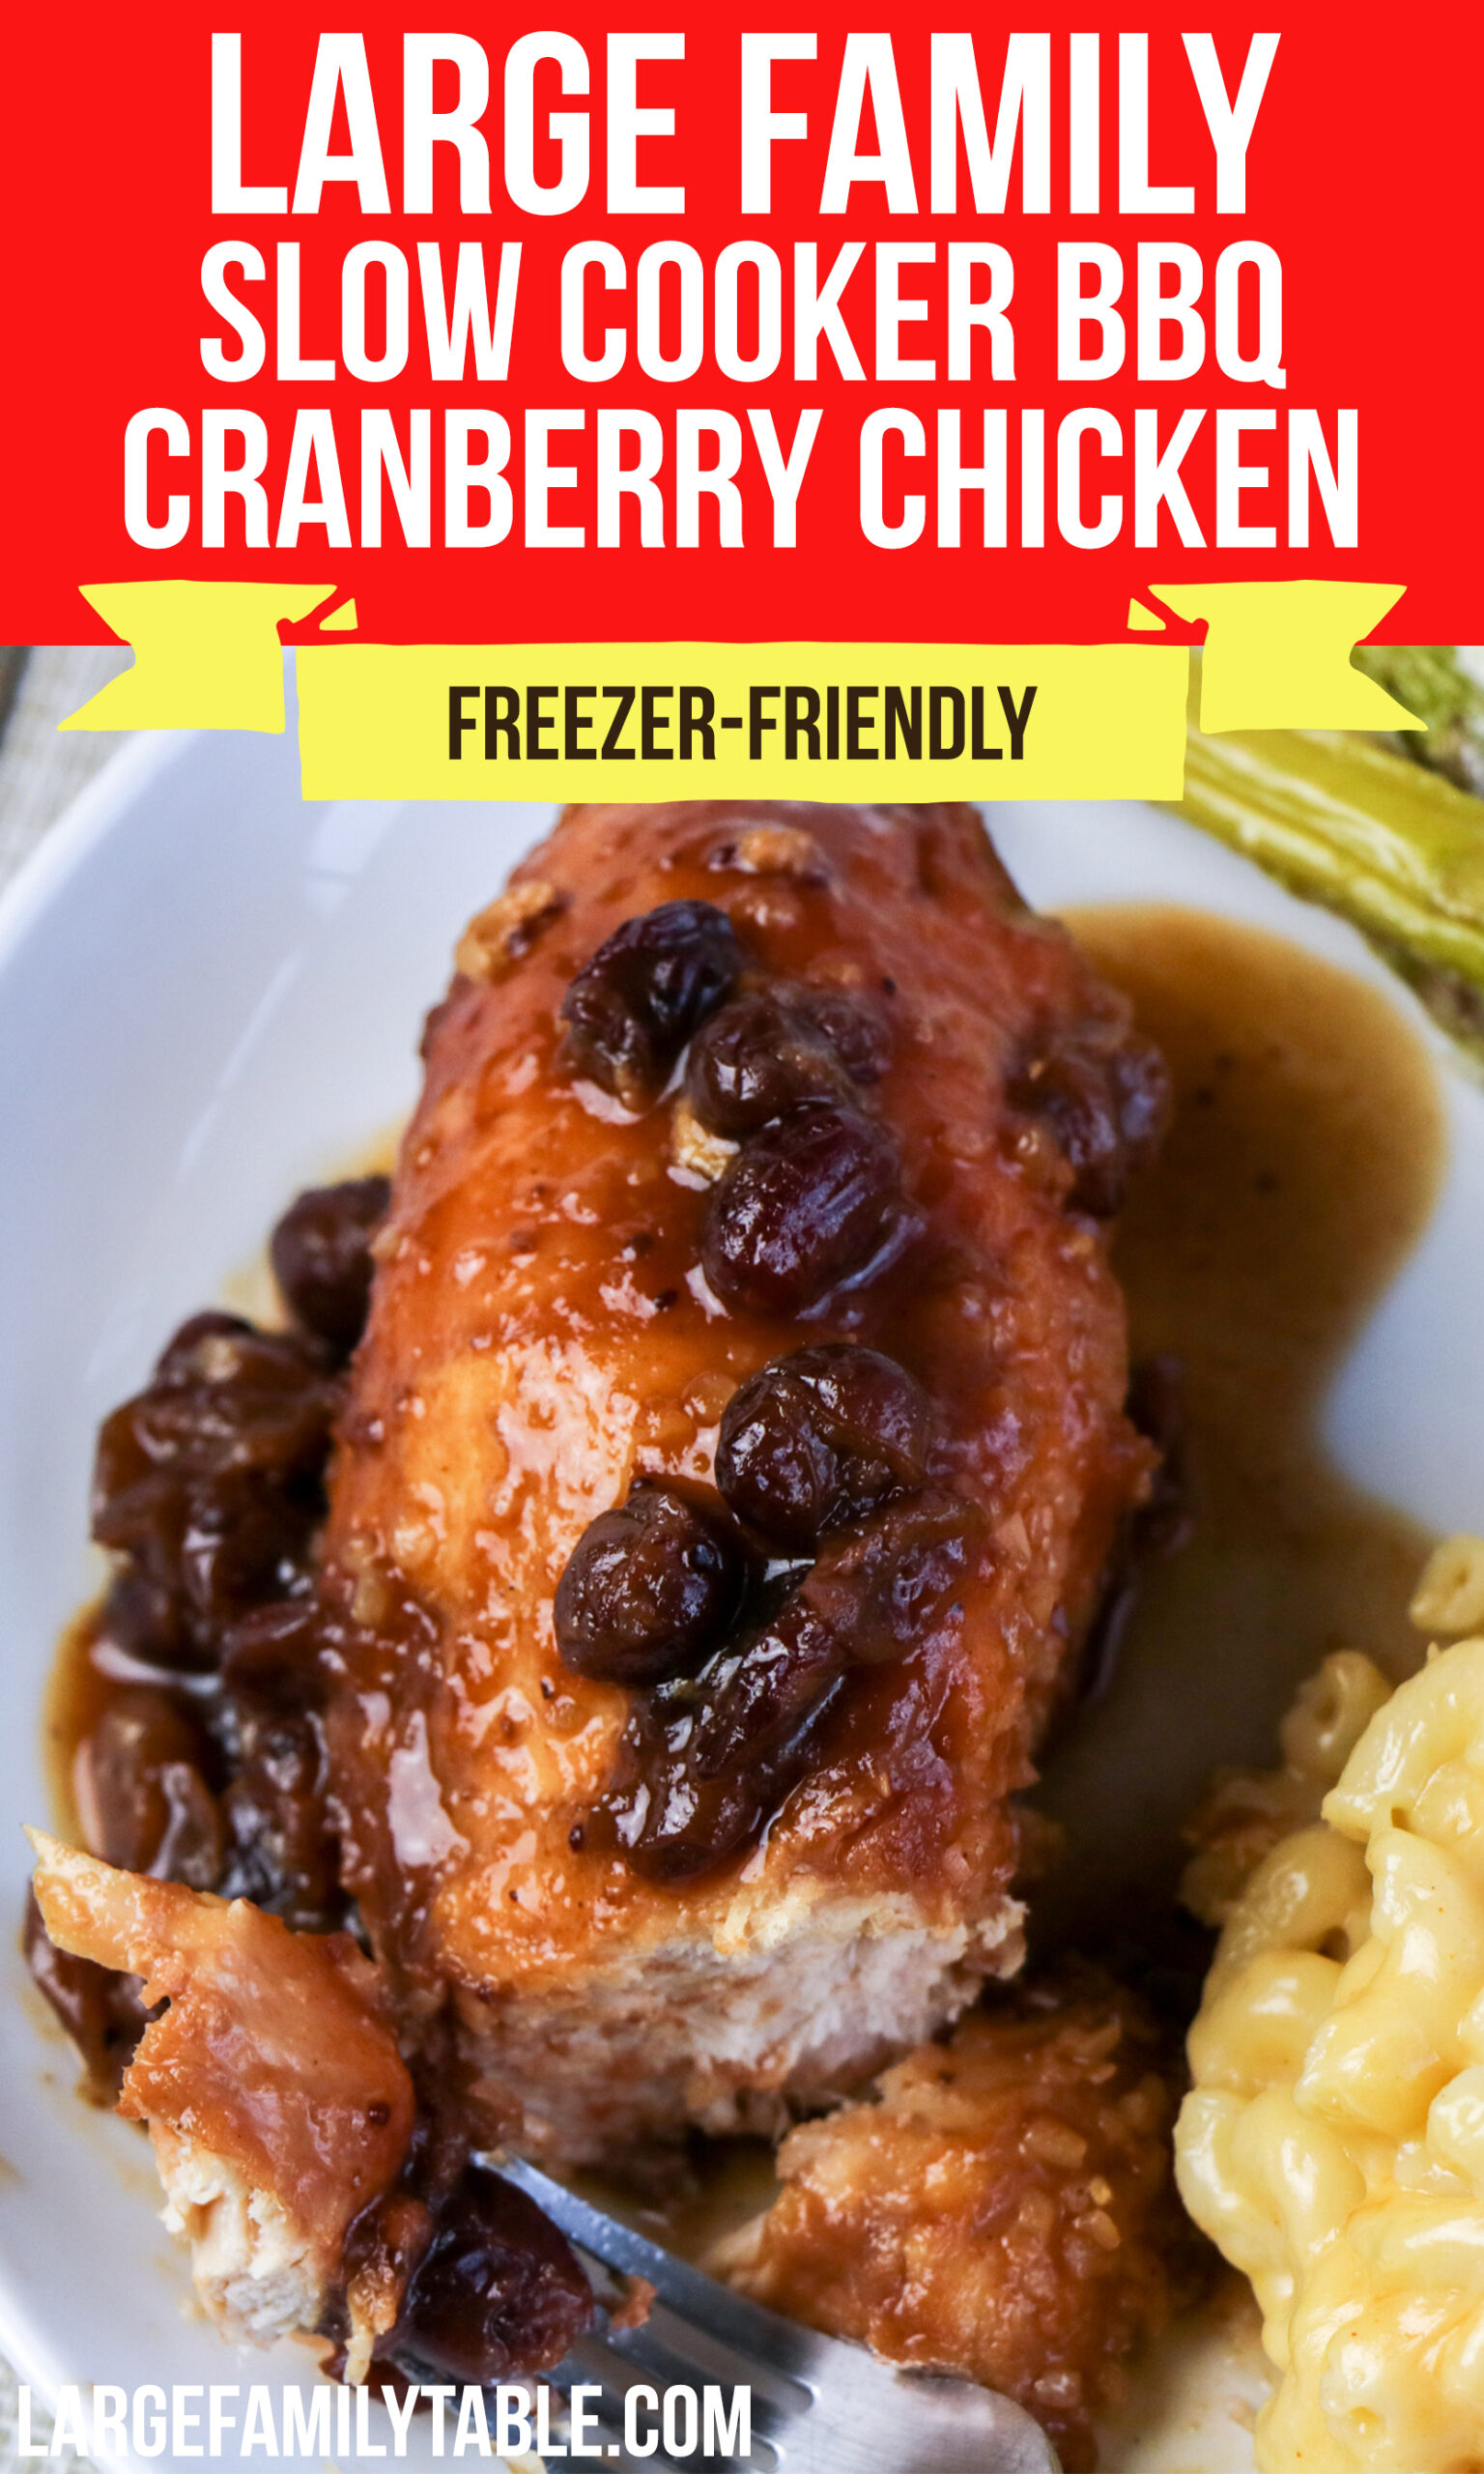 Large Family Slow Cooker BBQ Cranberry Chicken